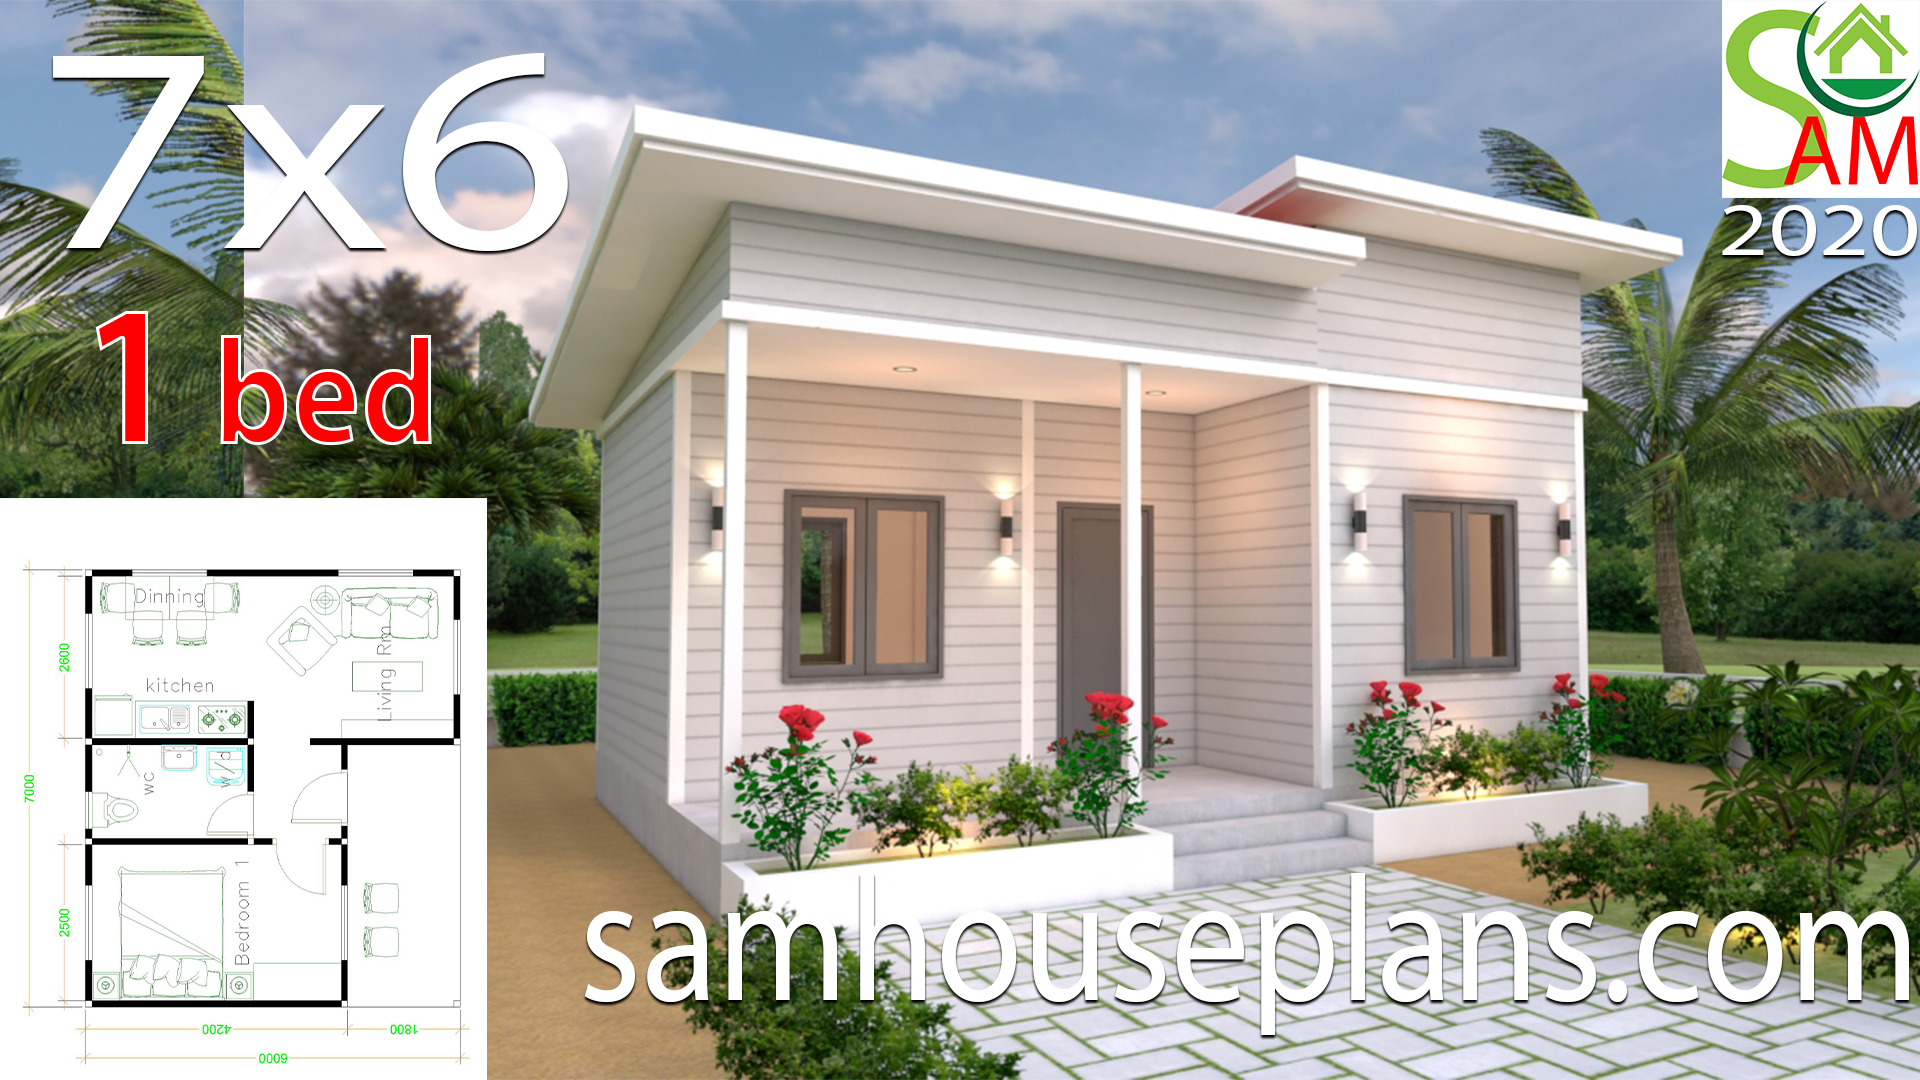 House Plans 7x6 With One Bedroom Shed Roof Samhouseplans